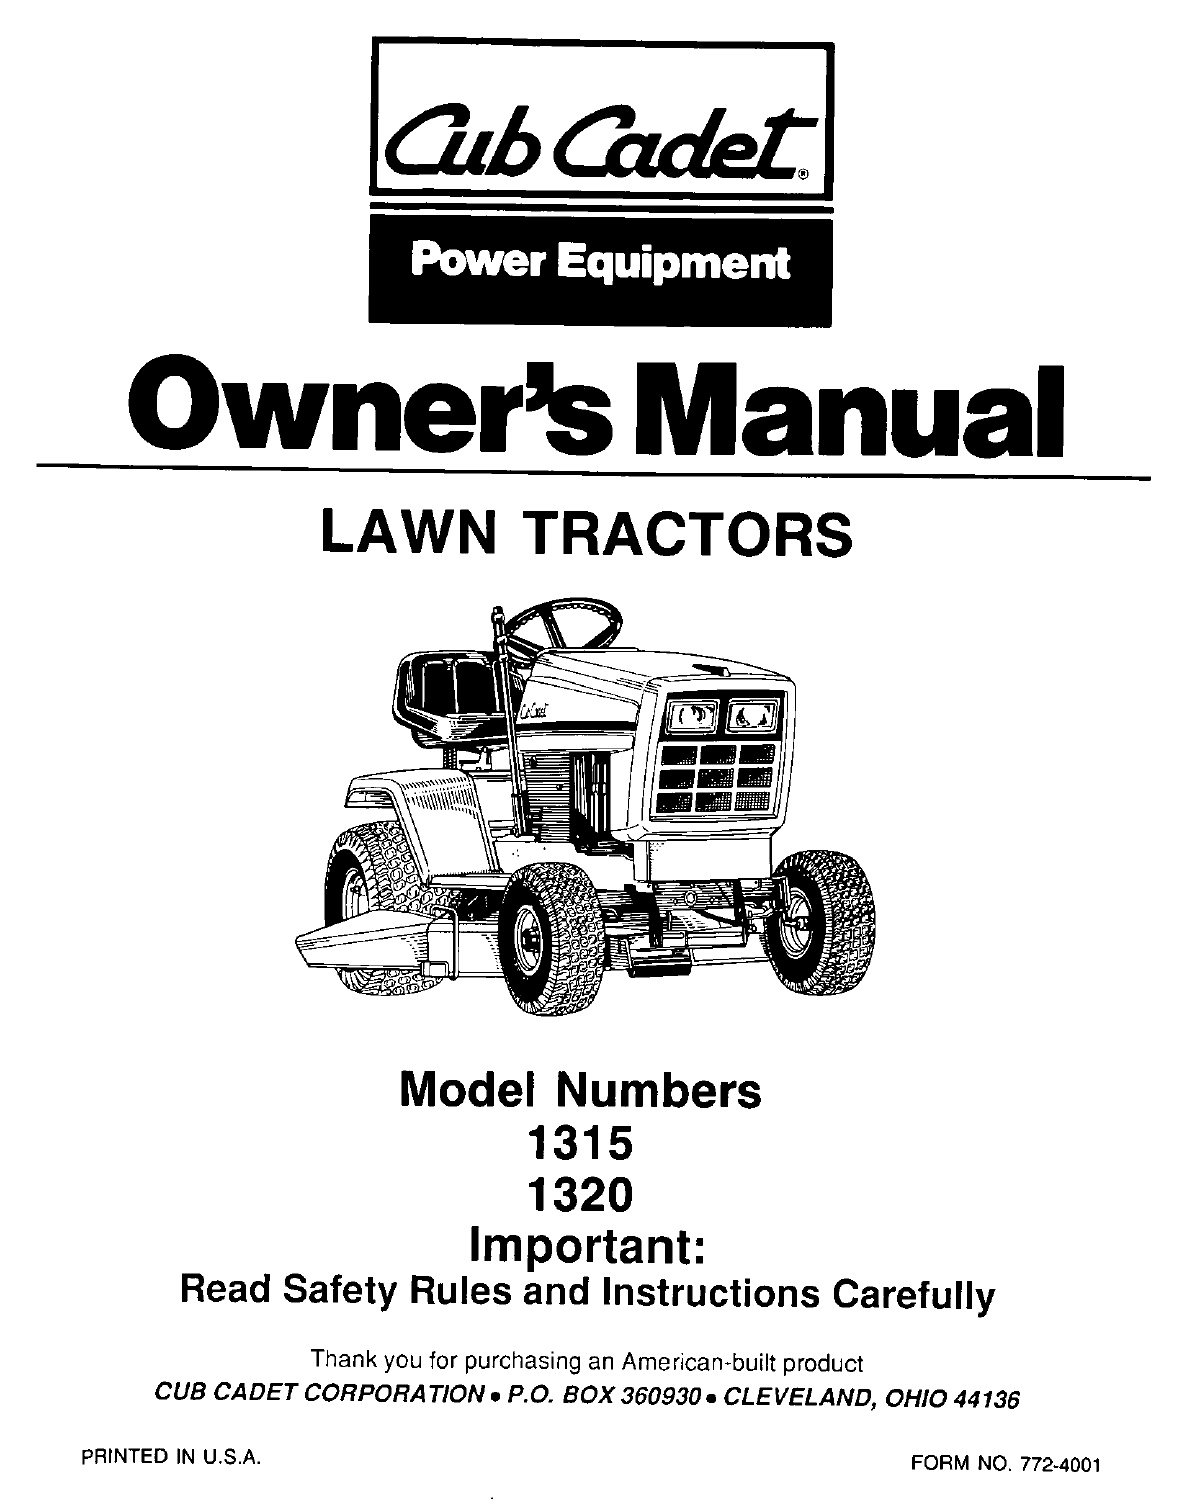 b9d9a24b f7b6 47c0 a3de 1c8daf104c36 bg1 cub cadet lawn mower 1320 user guide manualsonline com wiring diagram for cub cadet 1320 at readyjetset.co